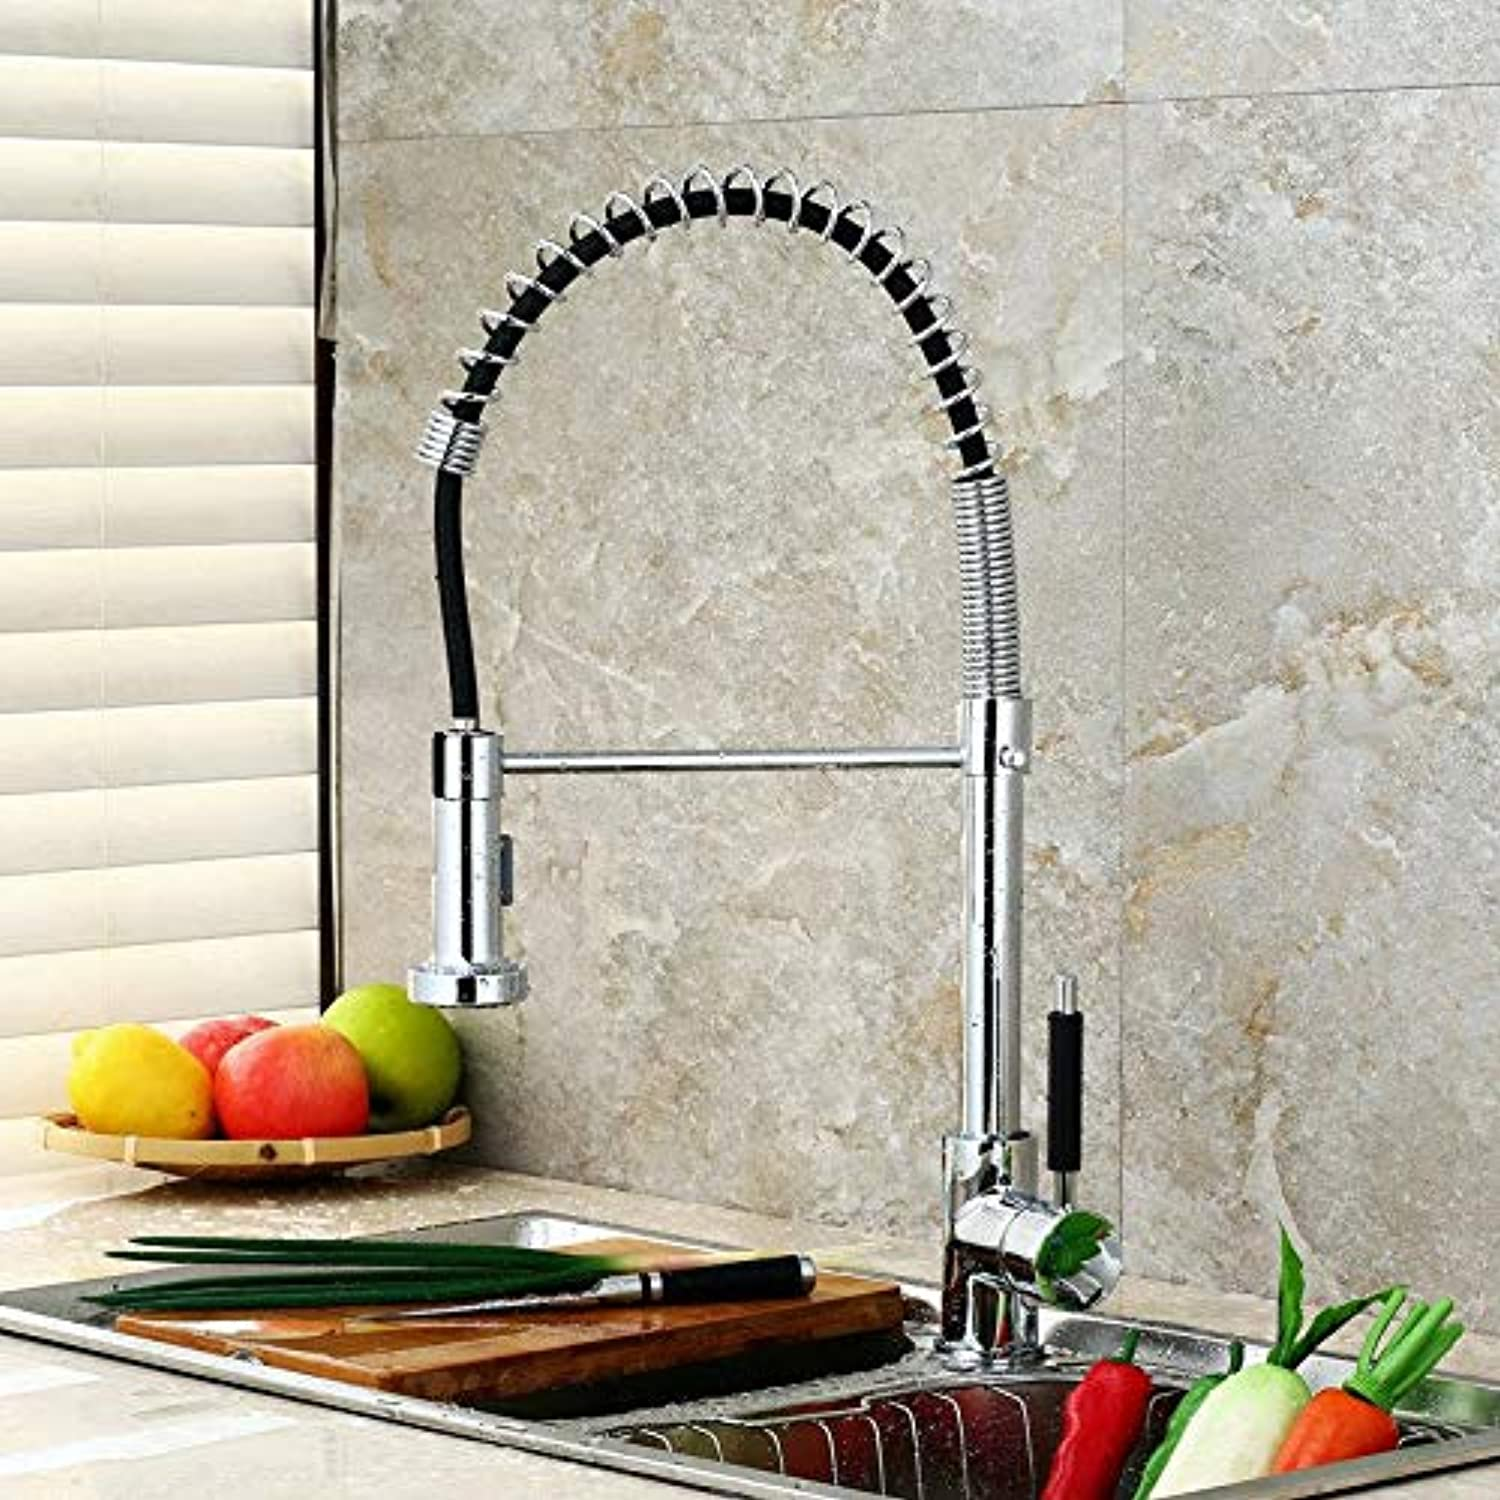 Taps Faucet Copper Hot and Cold Dual-Use Kitchen Faucet???Sink Faucet Faucet